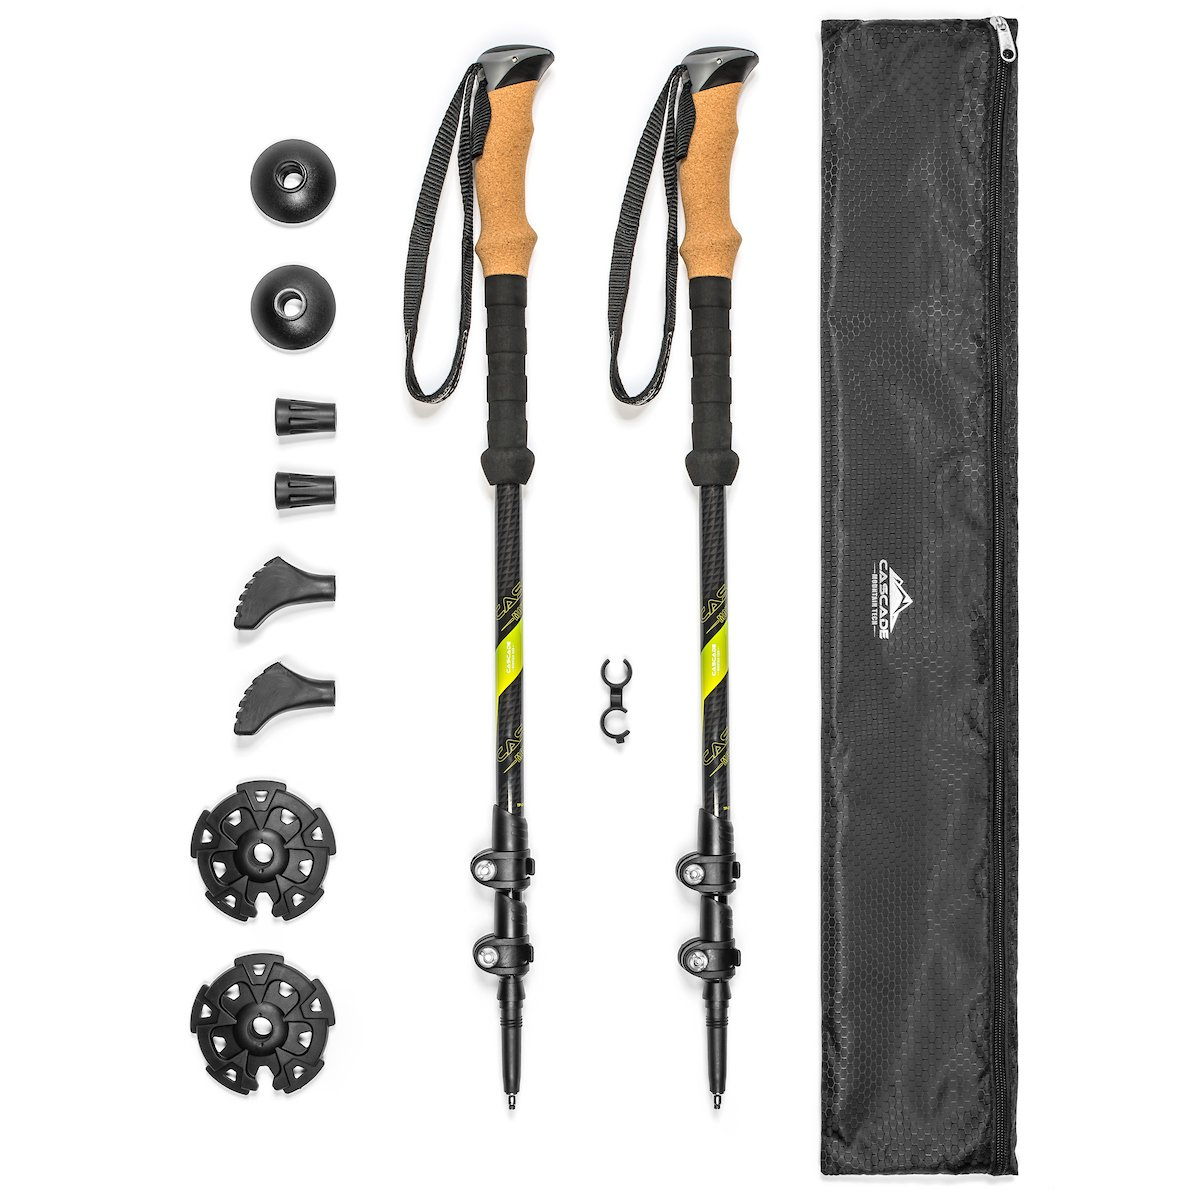 photo: Cascade Mountain Tech Carbon Fiber Quick Lock Trekking Poles Cork Grip rigid trekking pole